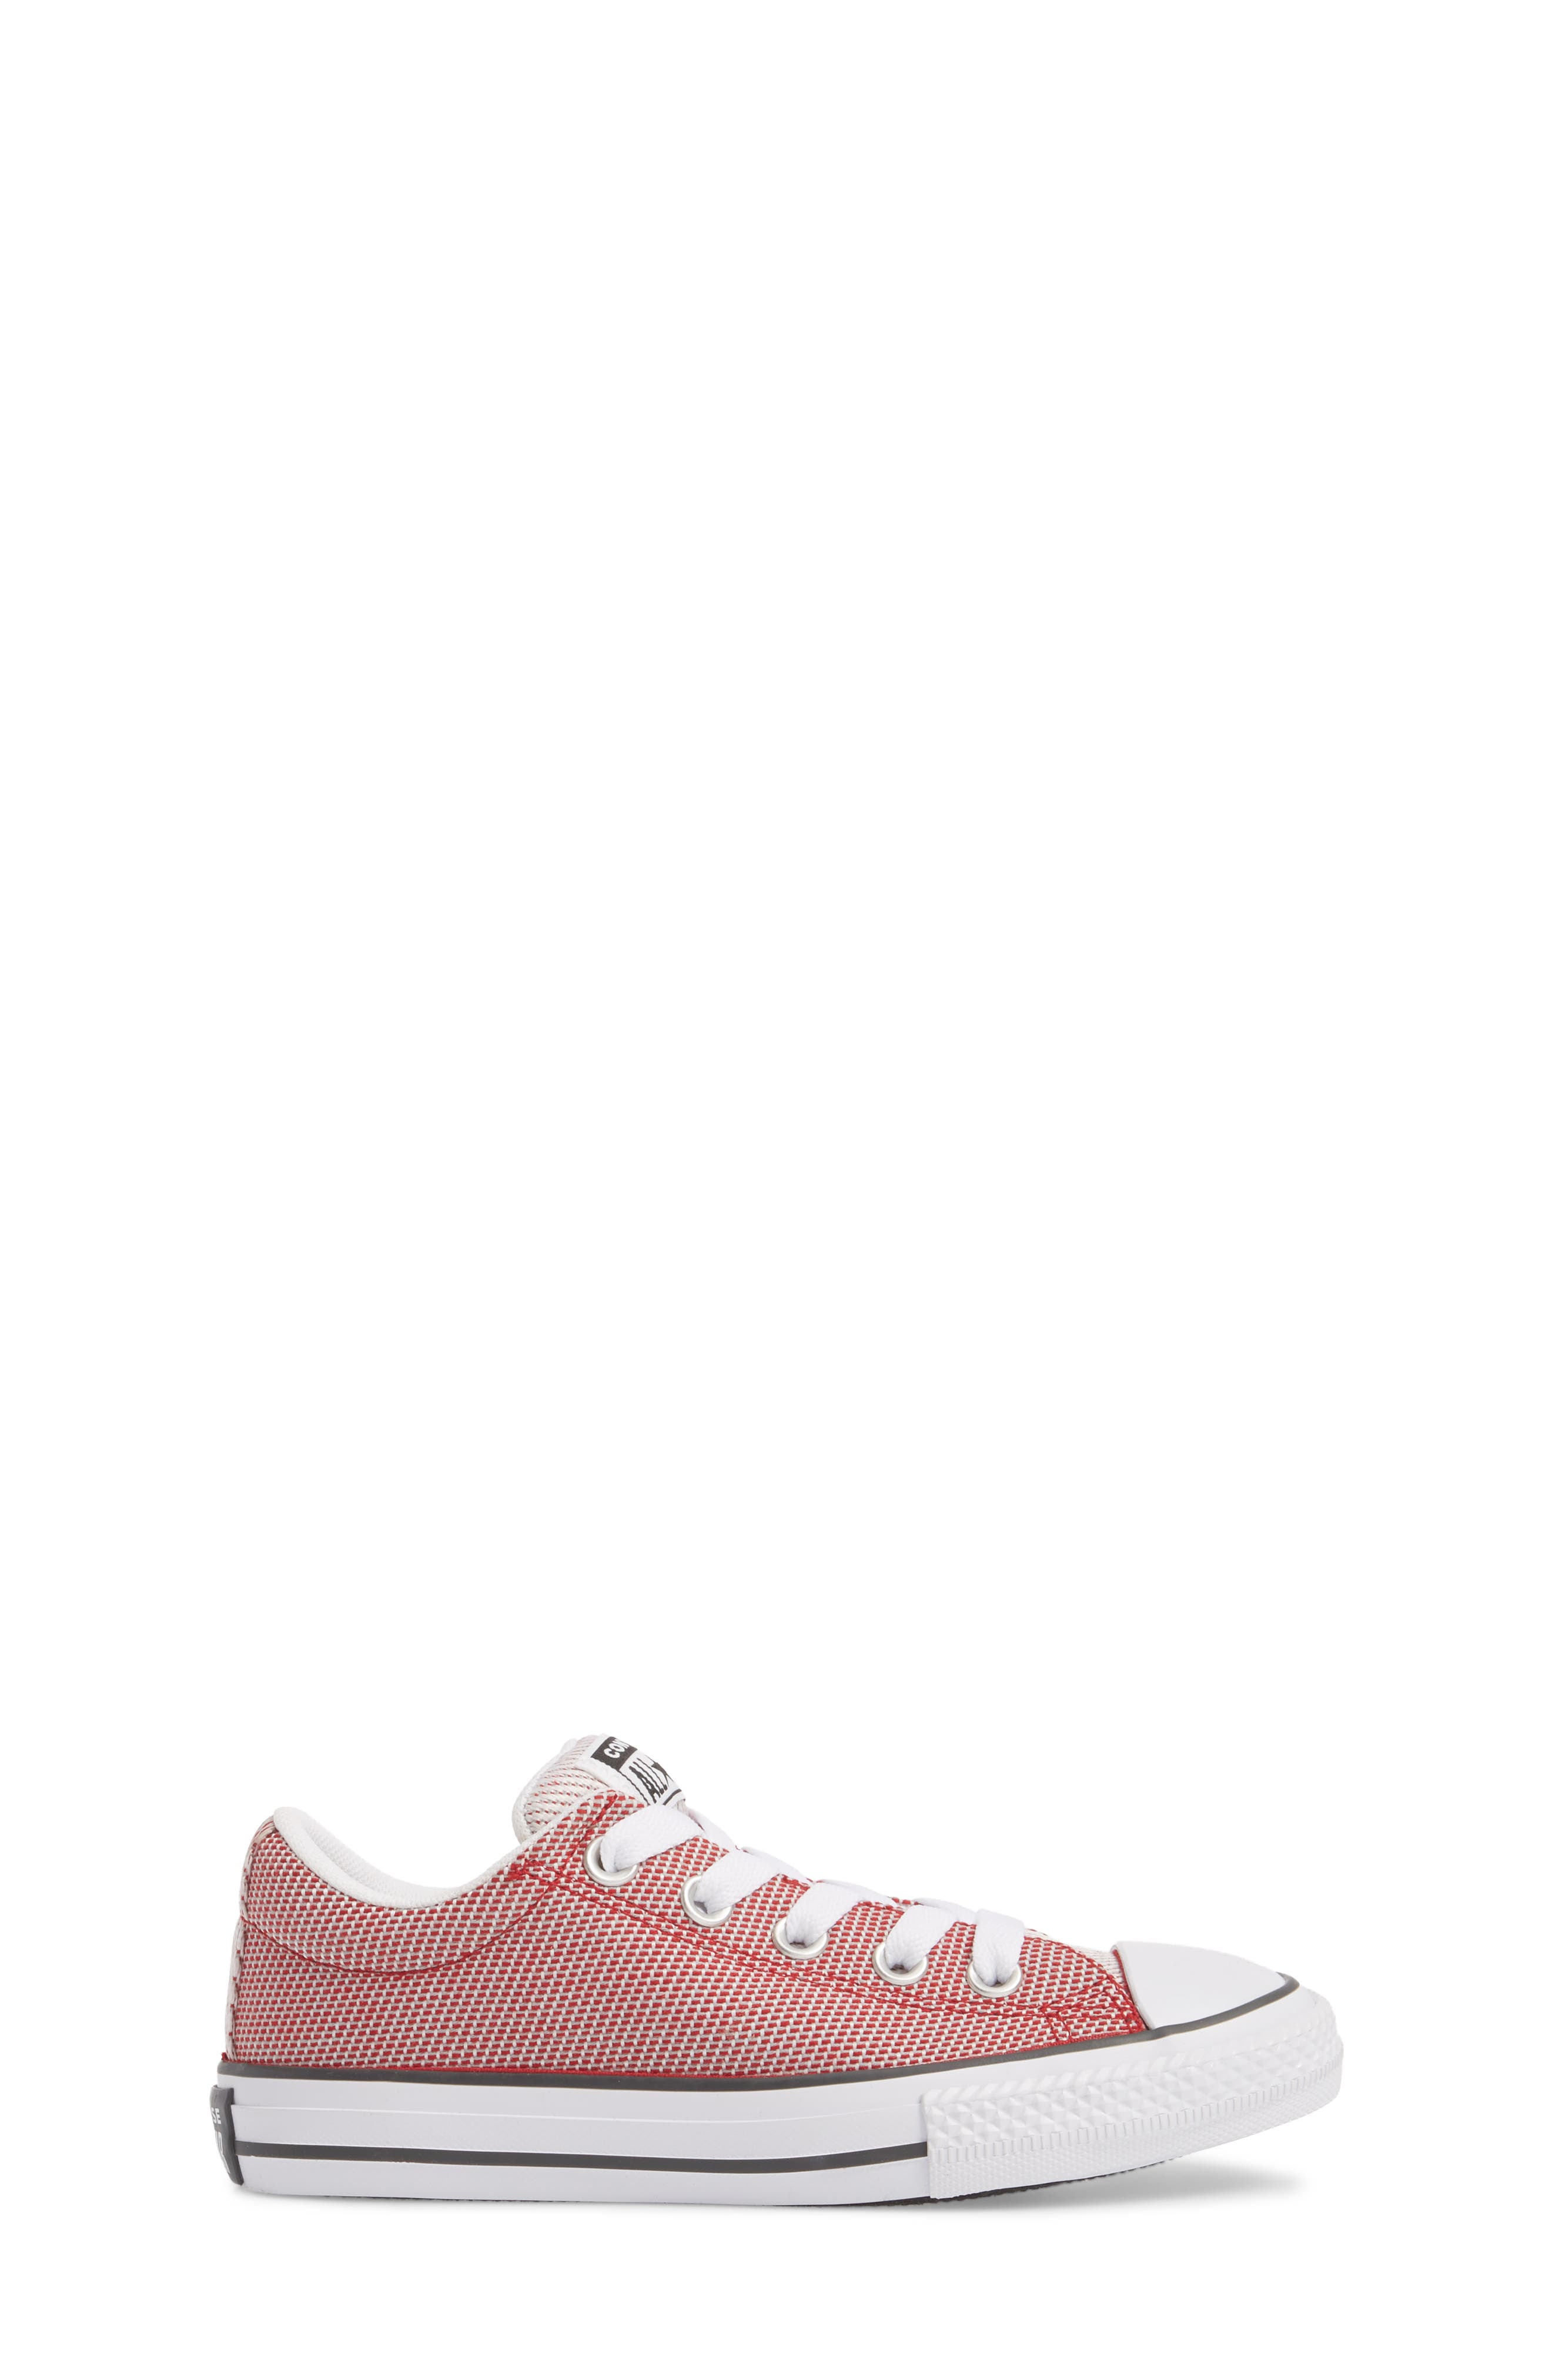 Chuck Taylor<sup>®</sup> All Star<sup>®</sup> Woven Street Sneaker,                             Alternate thumbnail 3, color,                             Gym Red